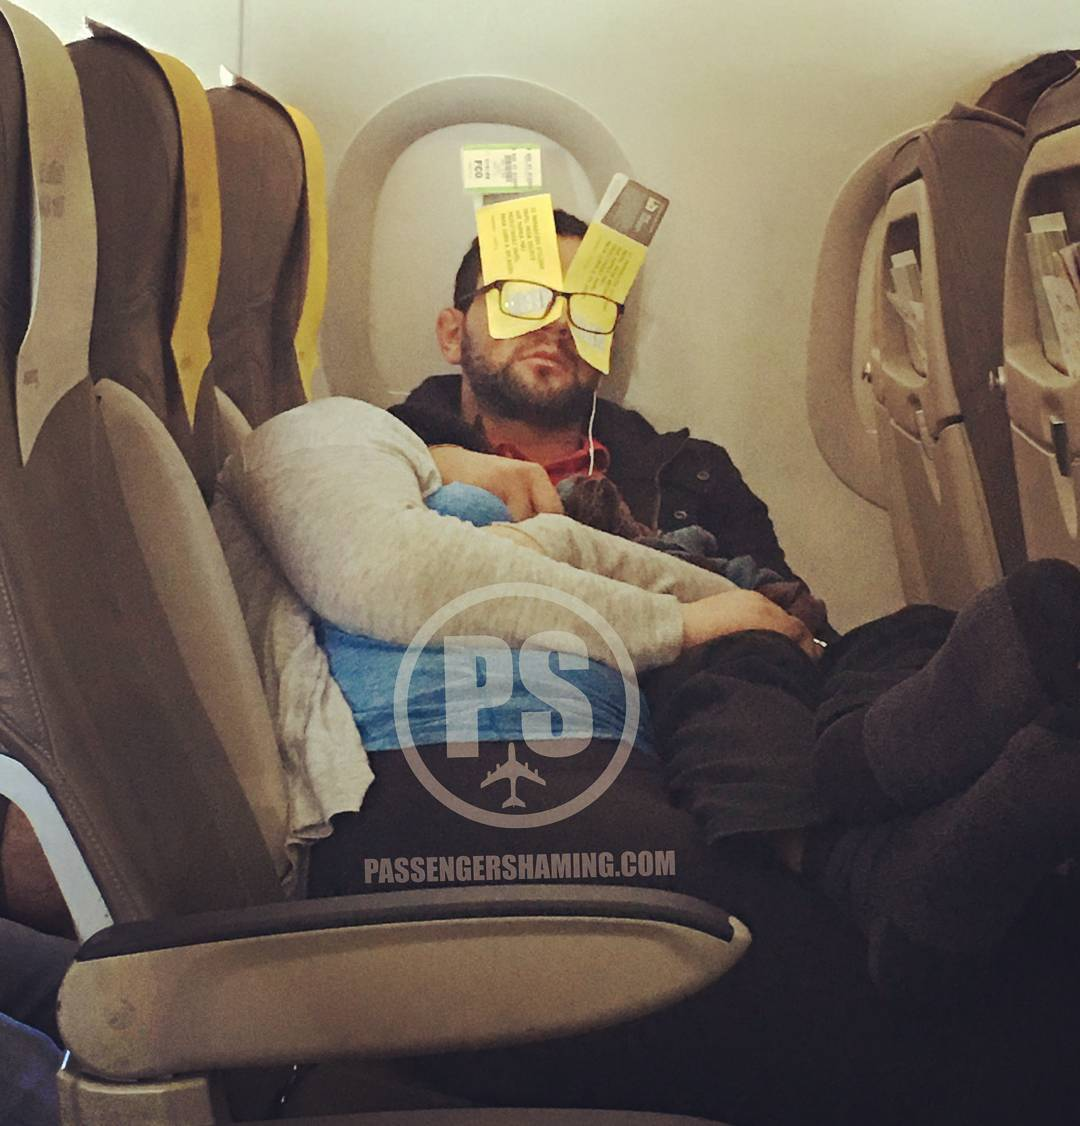 people travelling in aricraft funny pictures 4 - Just see these shocking pictures inside the flight